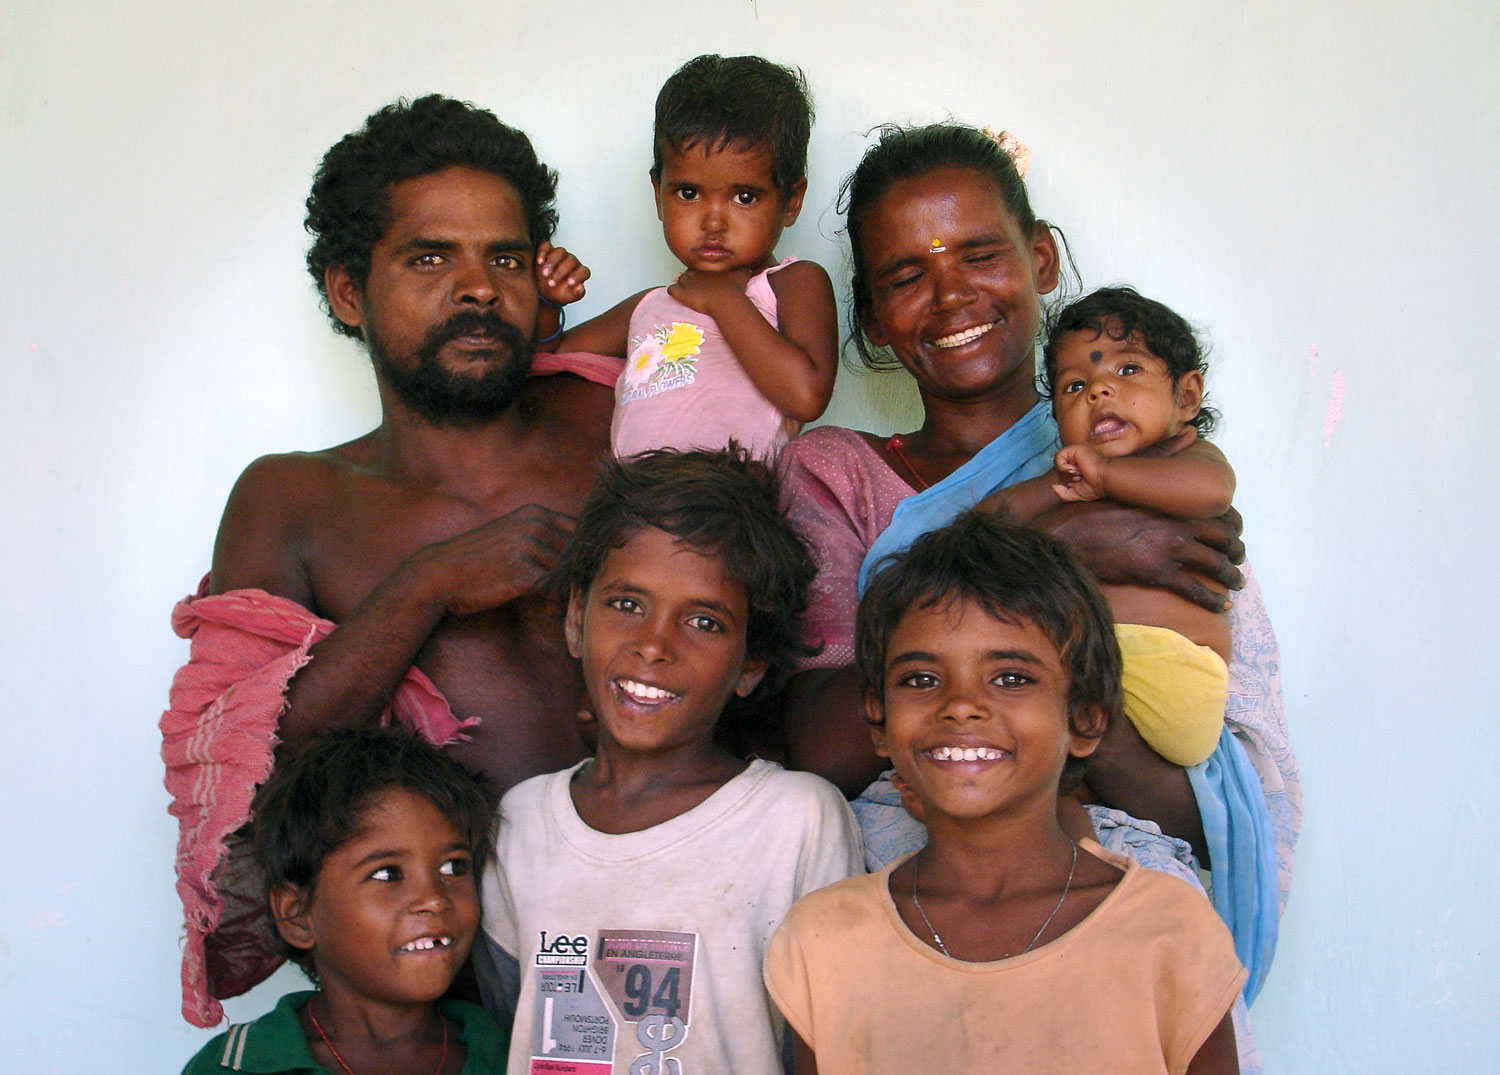 Gopi's family were rescued in May 2007